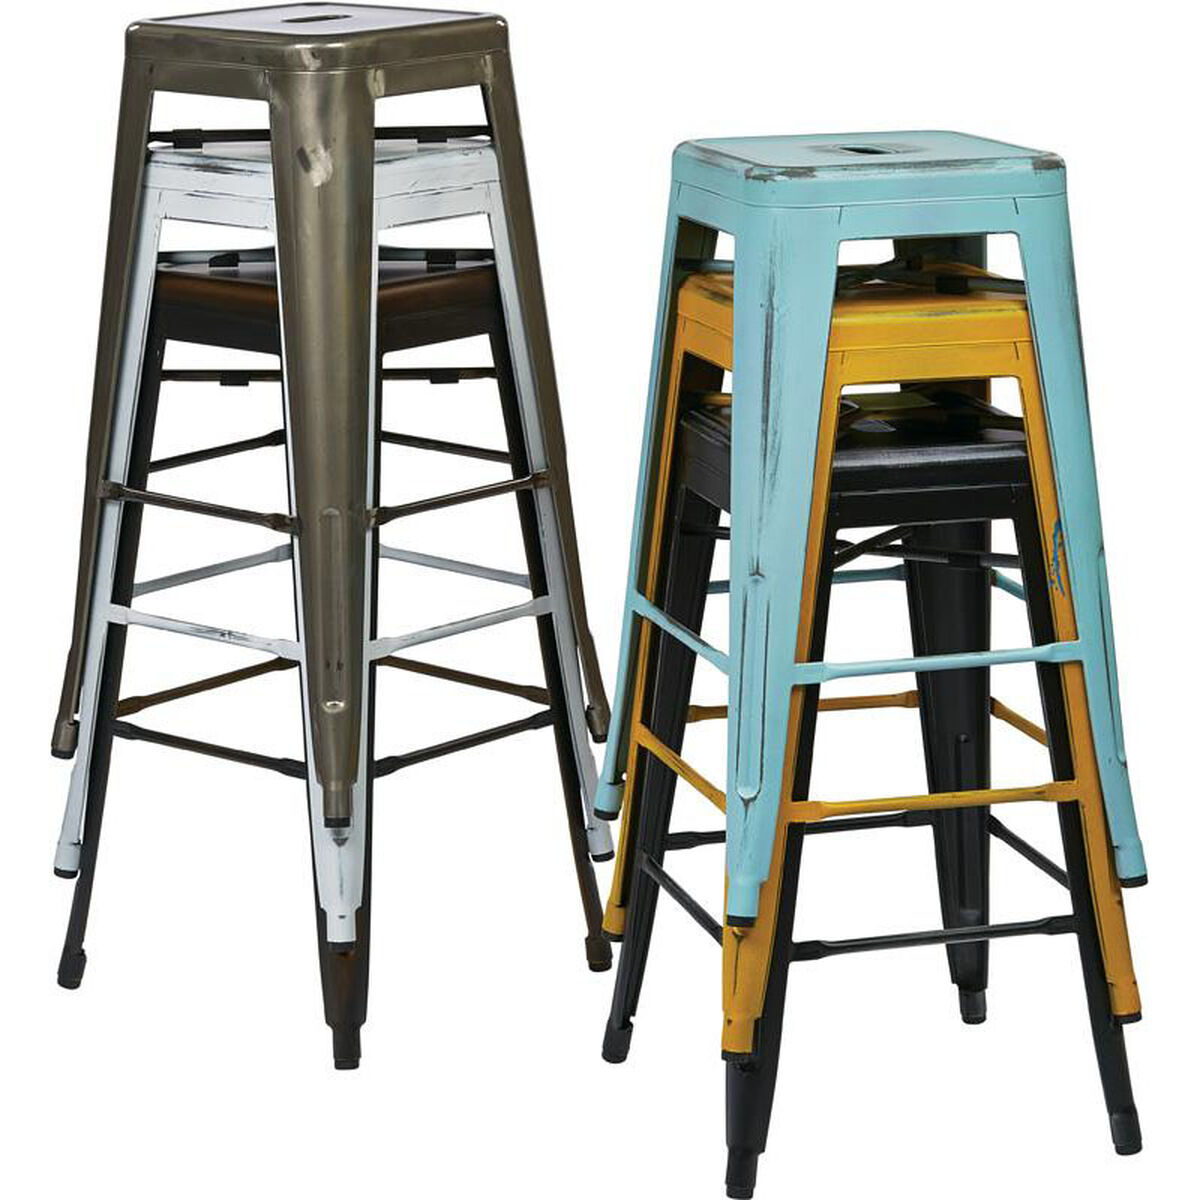 Our Osp Designs Bristow 26 Backless Antique Metal Barstools 2 Pack